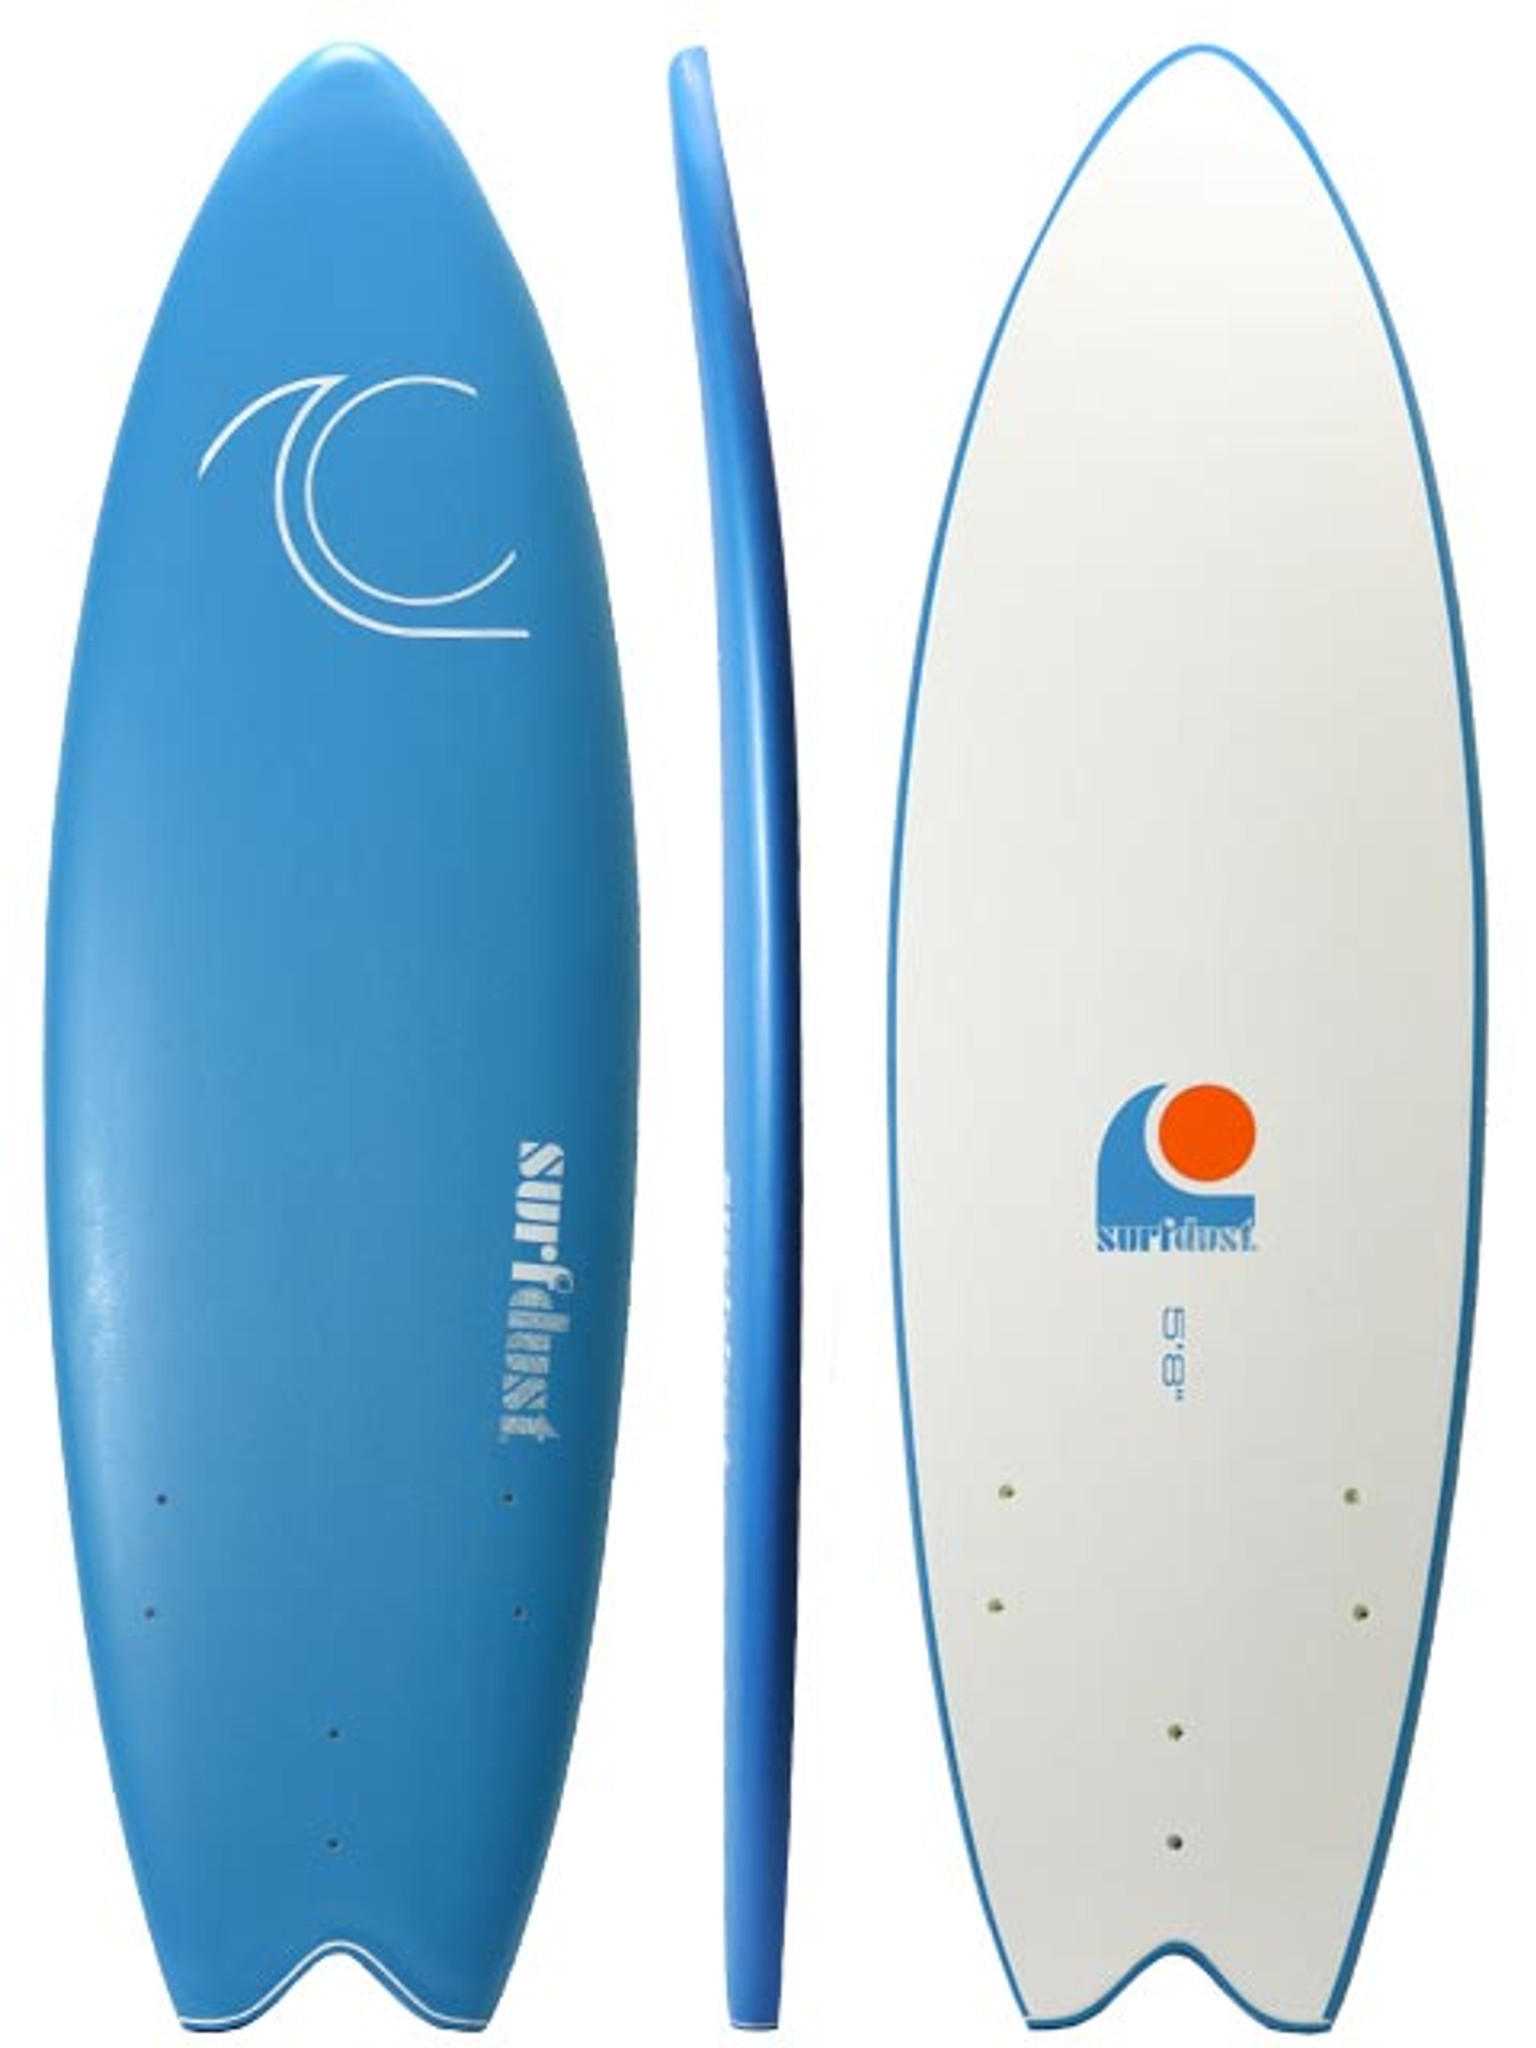 SURFDUST - Primo 5.8ft Fish - Softboard - Soft Surfboard